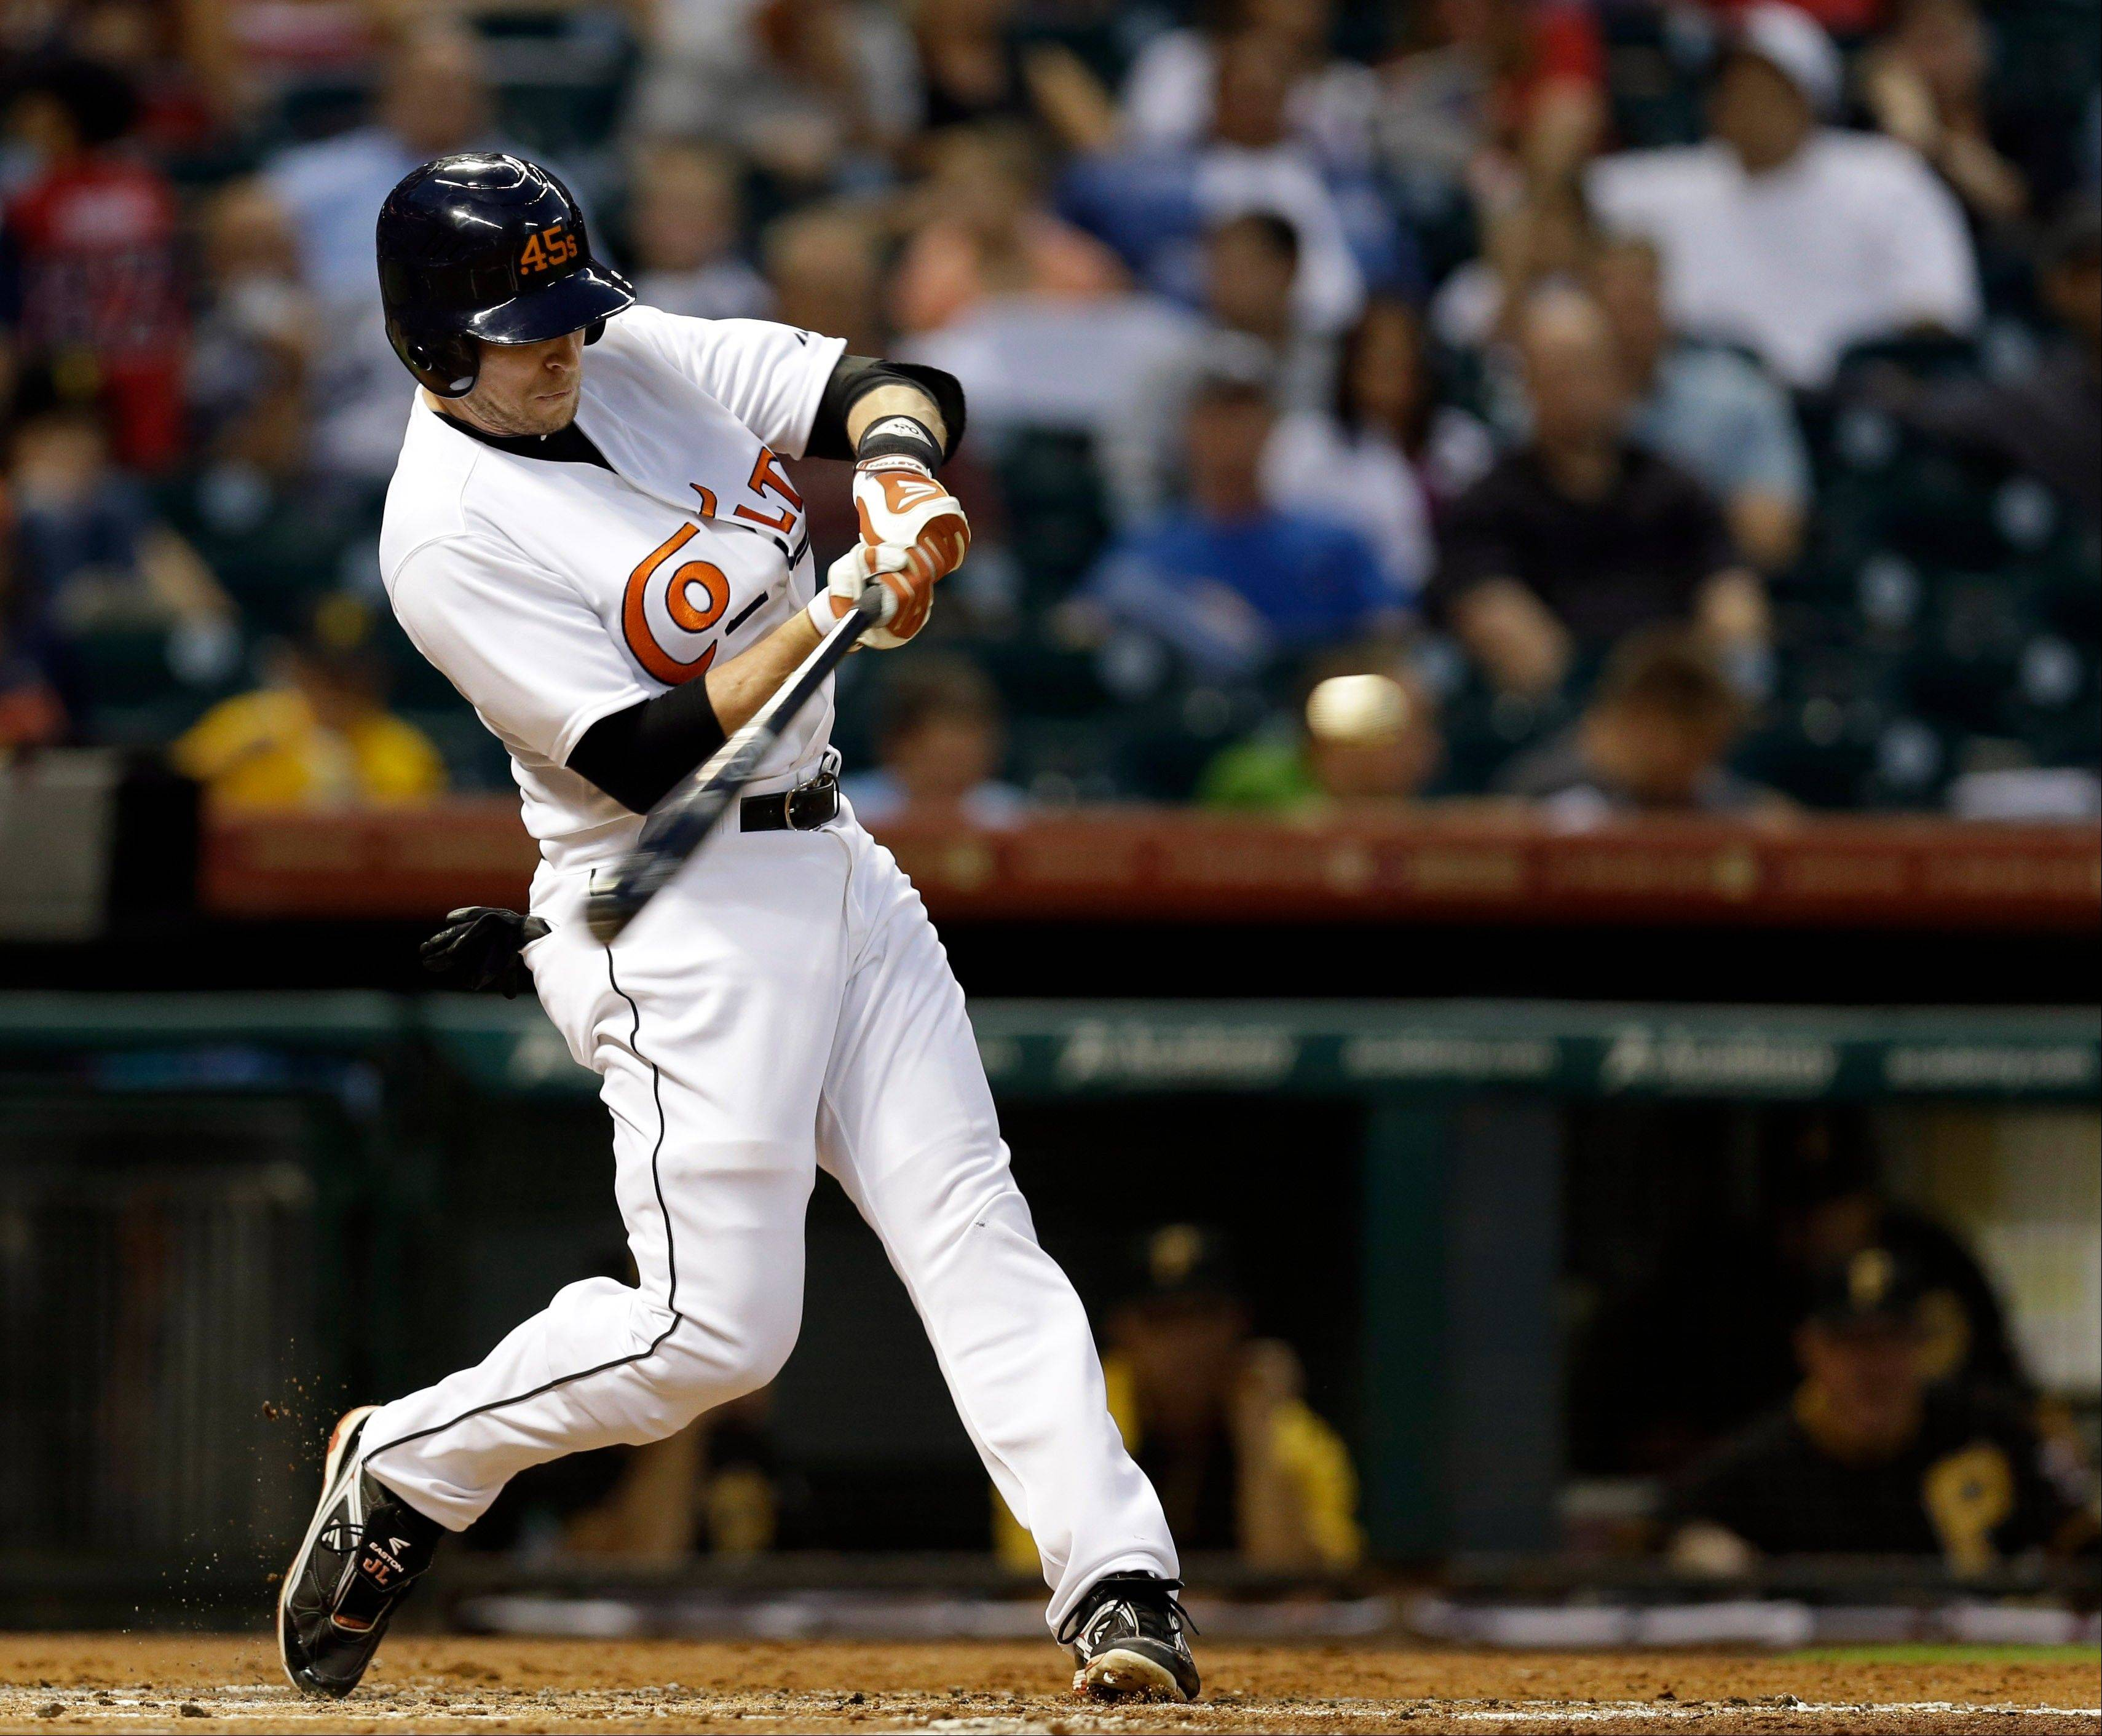 The Astros' Jed Lowrie hits a three-run home run during the first inning Friday against the Pittsburgh Pirates in Houston.